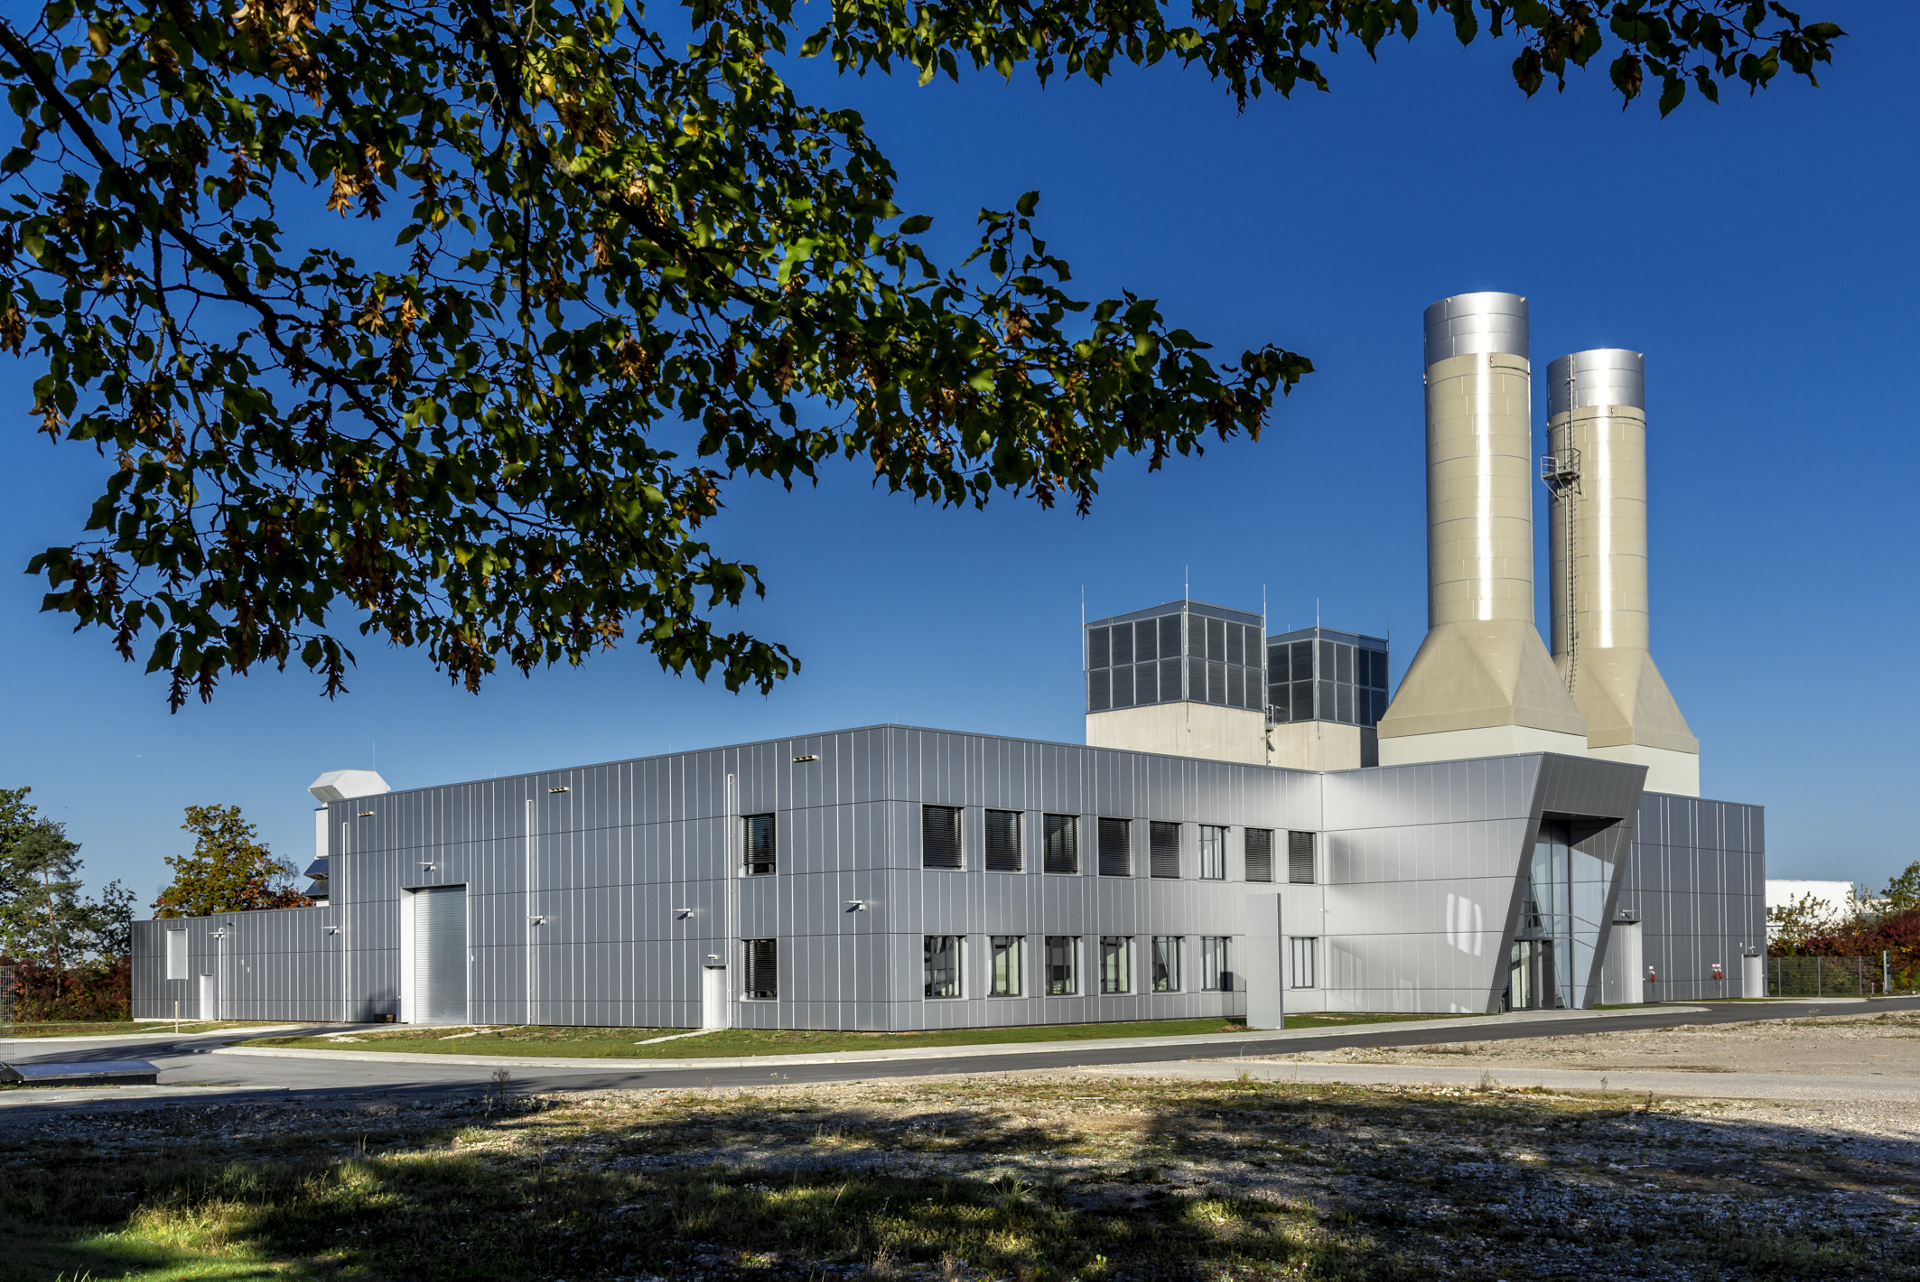 This Airbus test centre will provide a space to research technologies for alternative propulsion systems and energy sources – such as electric motors for unmanned aerial vehicles, hybrid propulsion systems and hydrogen for combustion or synthetic fuel use.